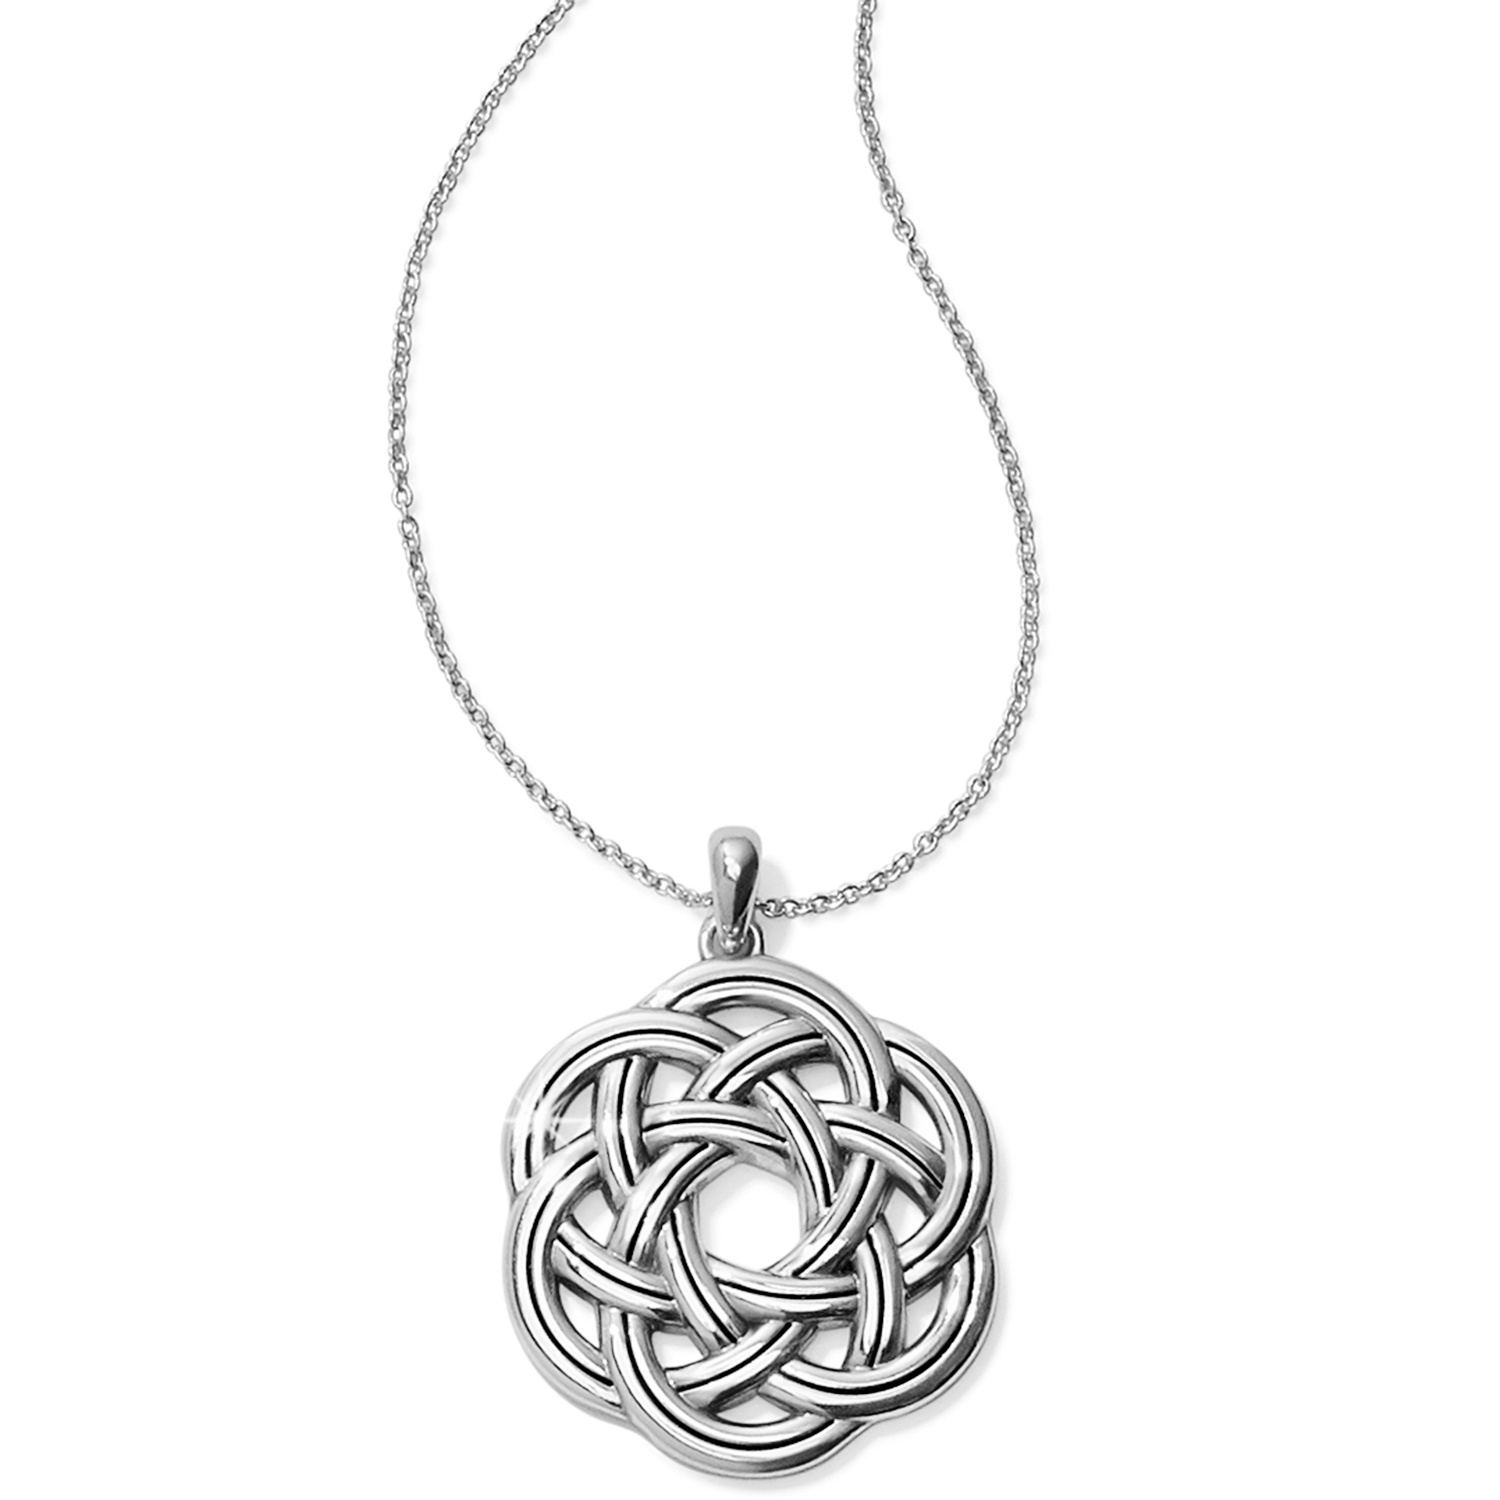 Interlok Eternity Circle Necklace Intended For 2019 Shimmering Knot Pendant Necklaces (View 12 of 25)